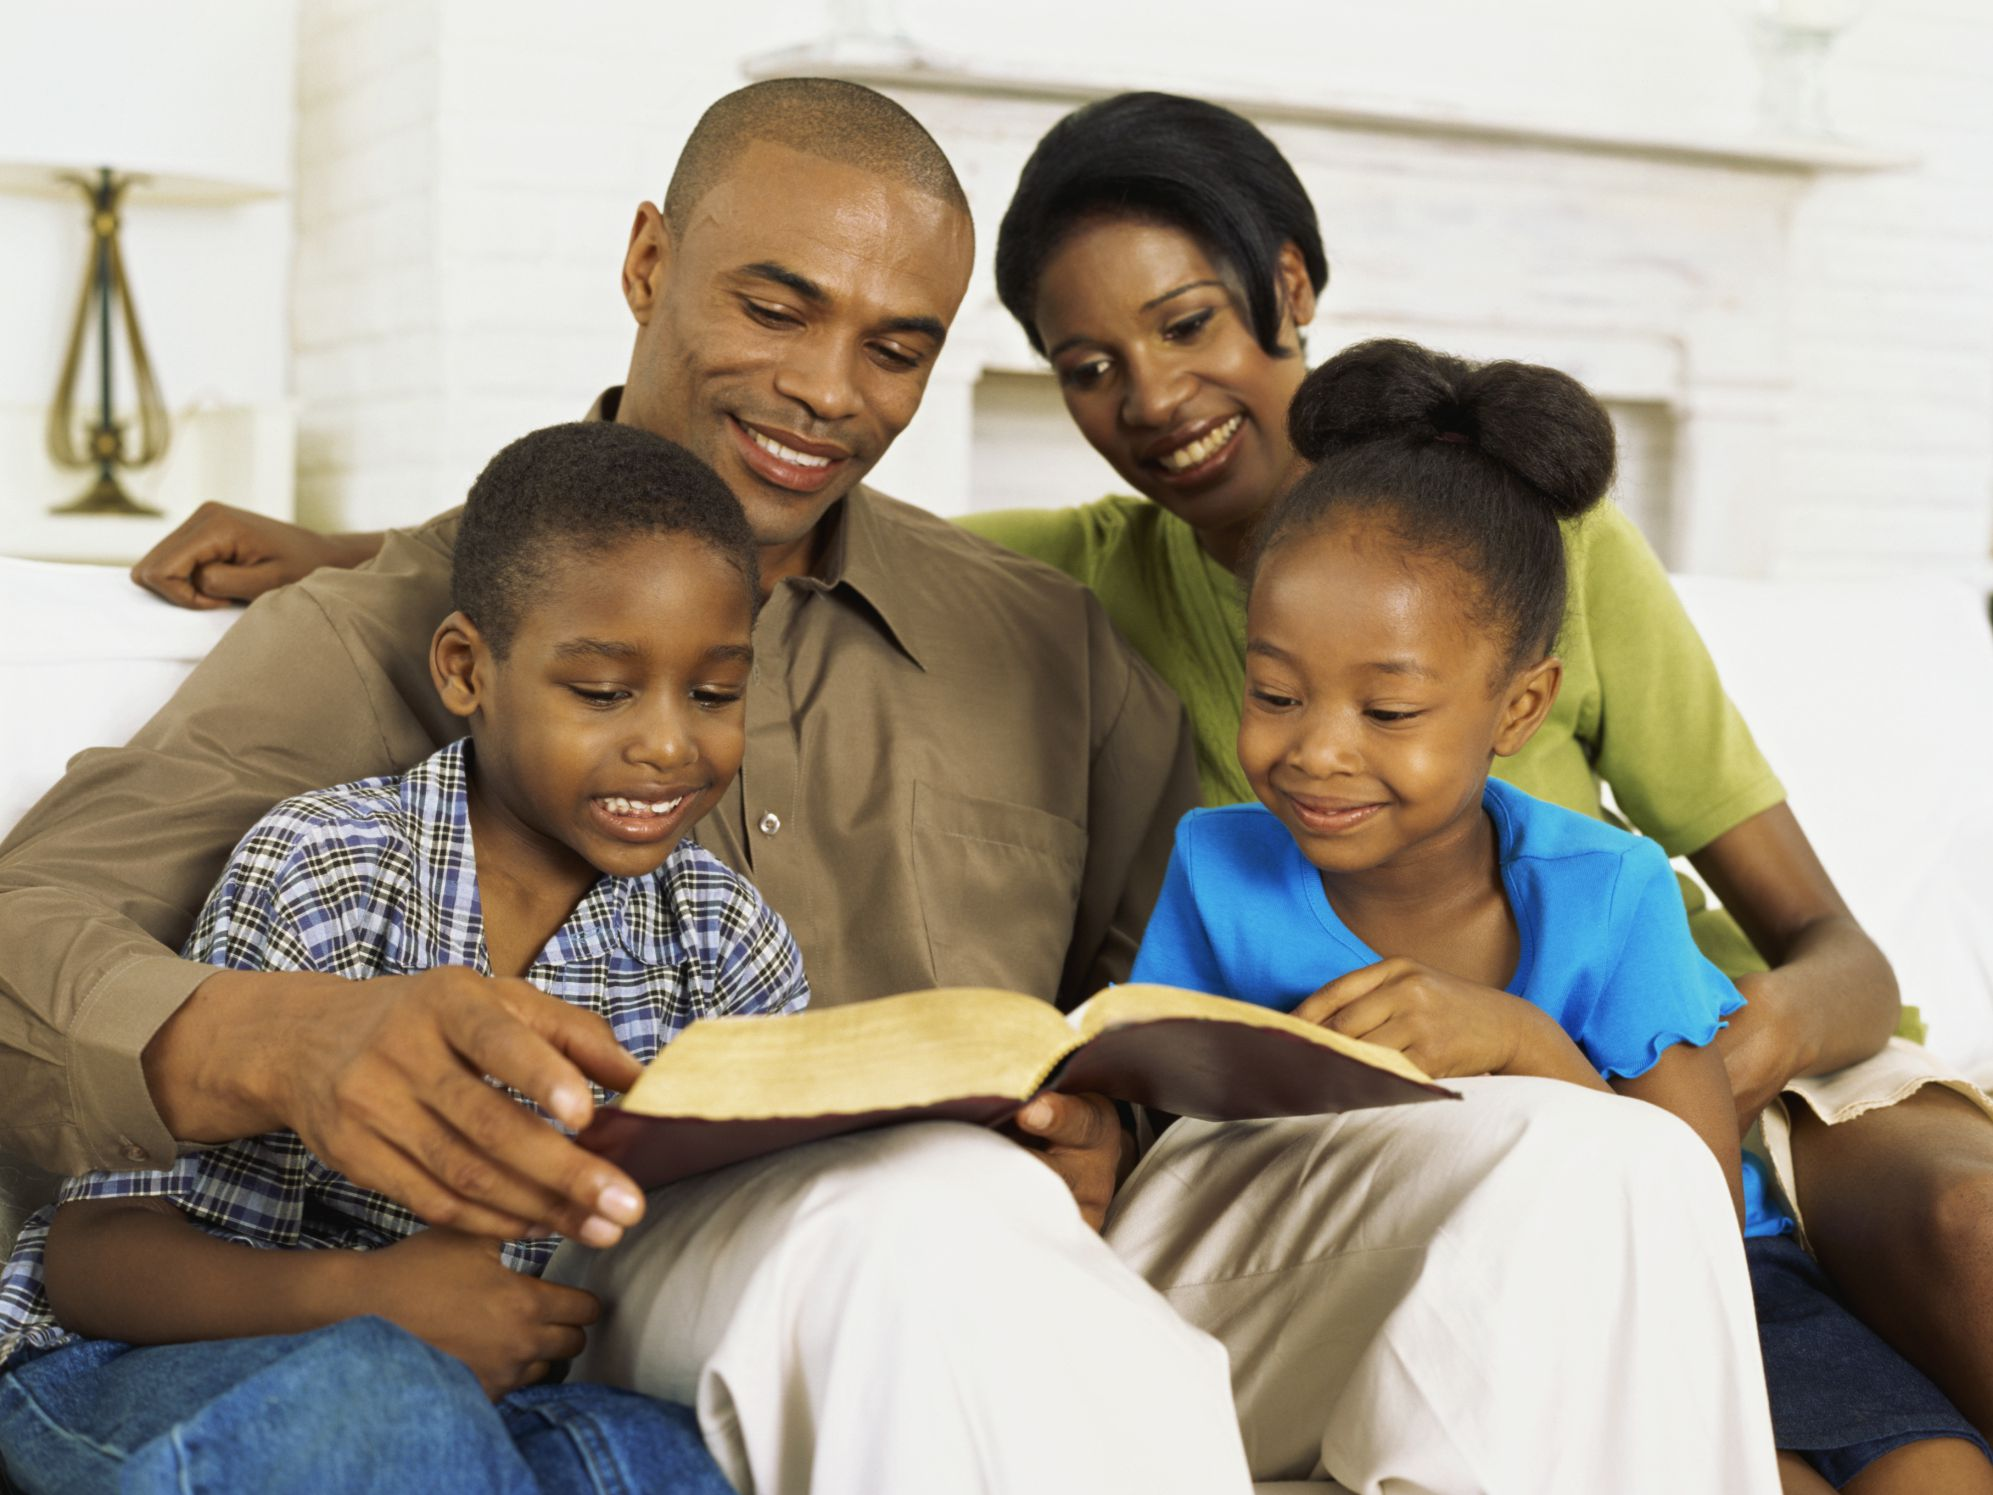 Bible Verses About Children to Teach Your Kids